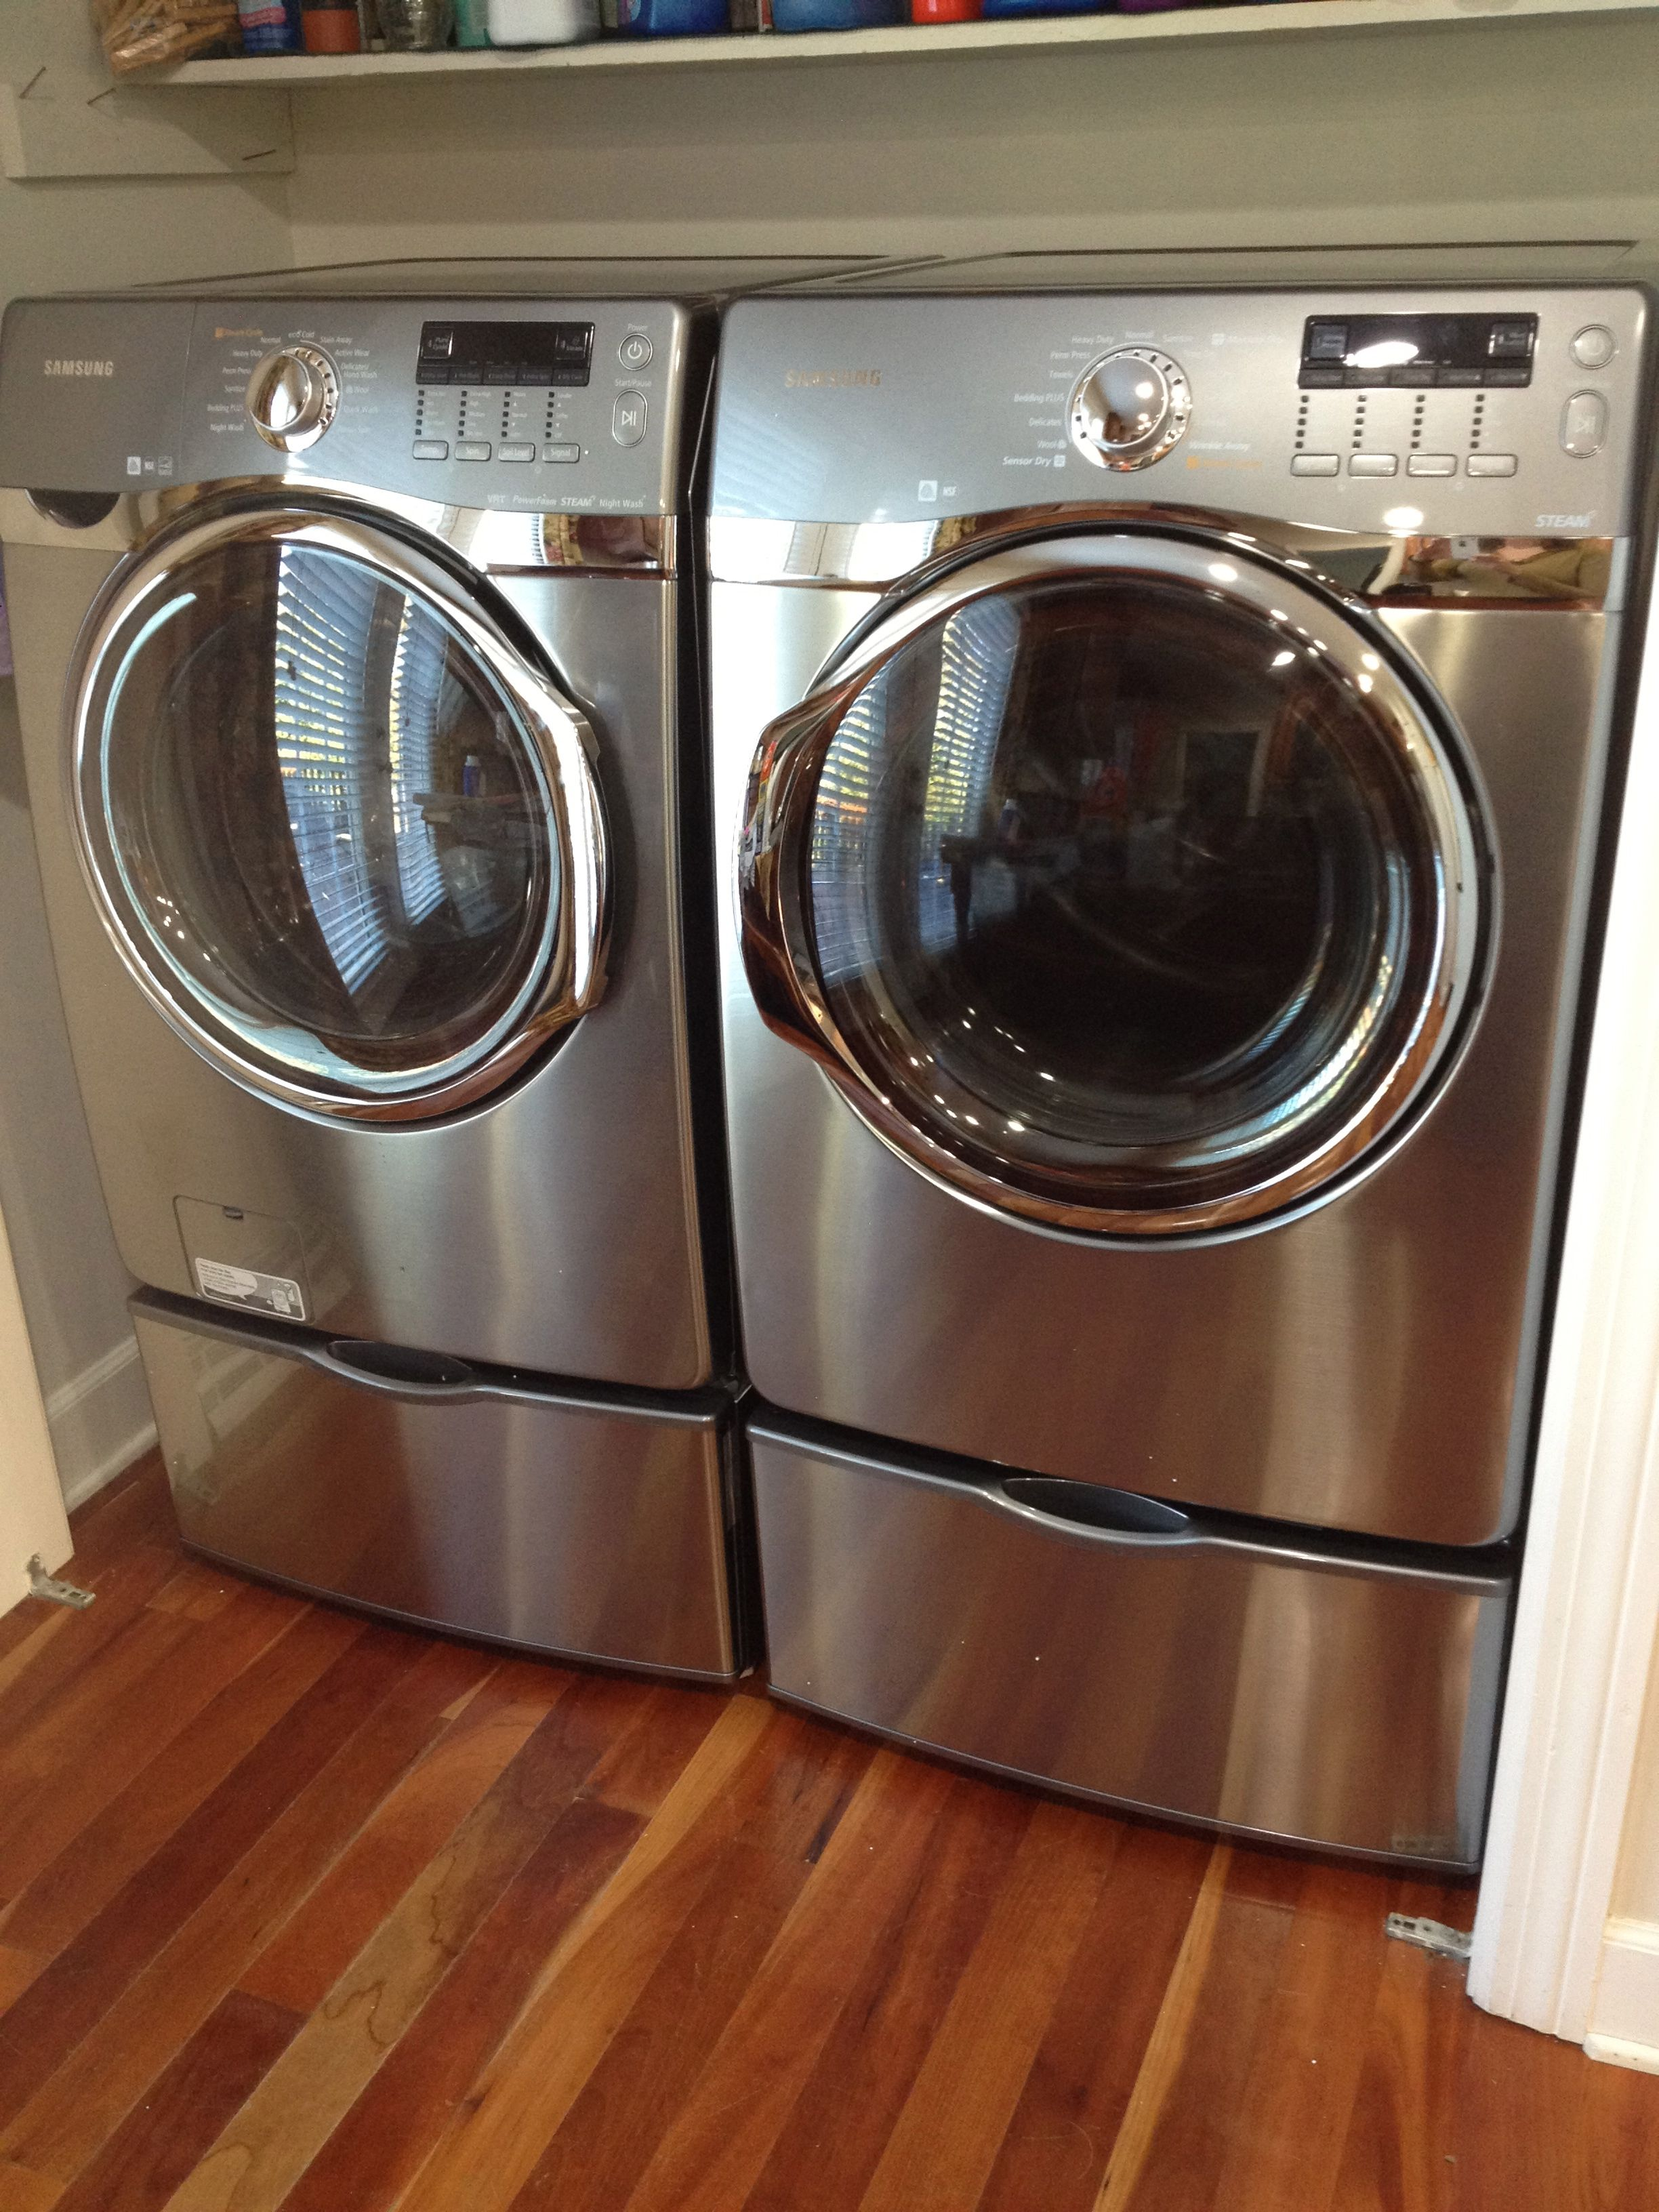 New Washer Dryer But In White